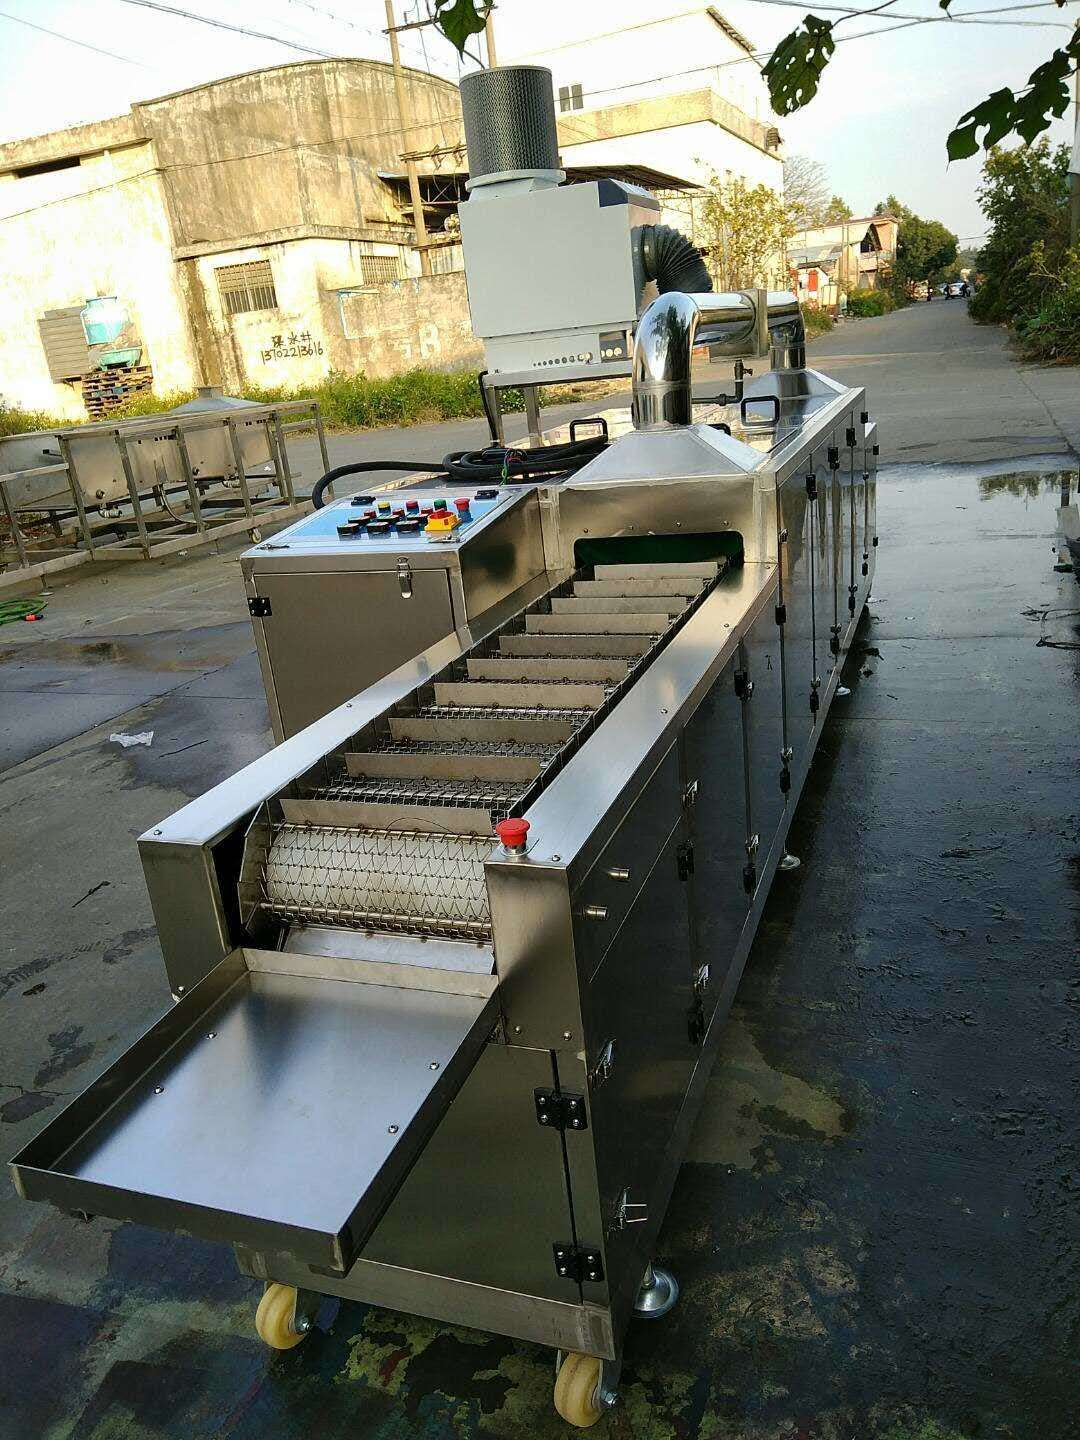 Pass-through drying equipment at stainless steel sink of large pass-through ultrasonic cleaning